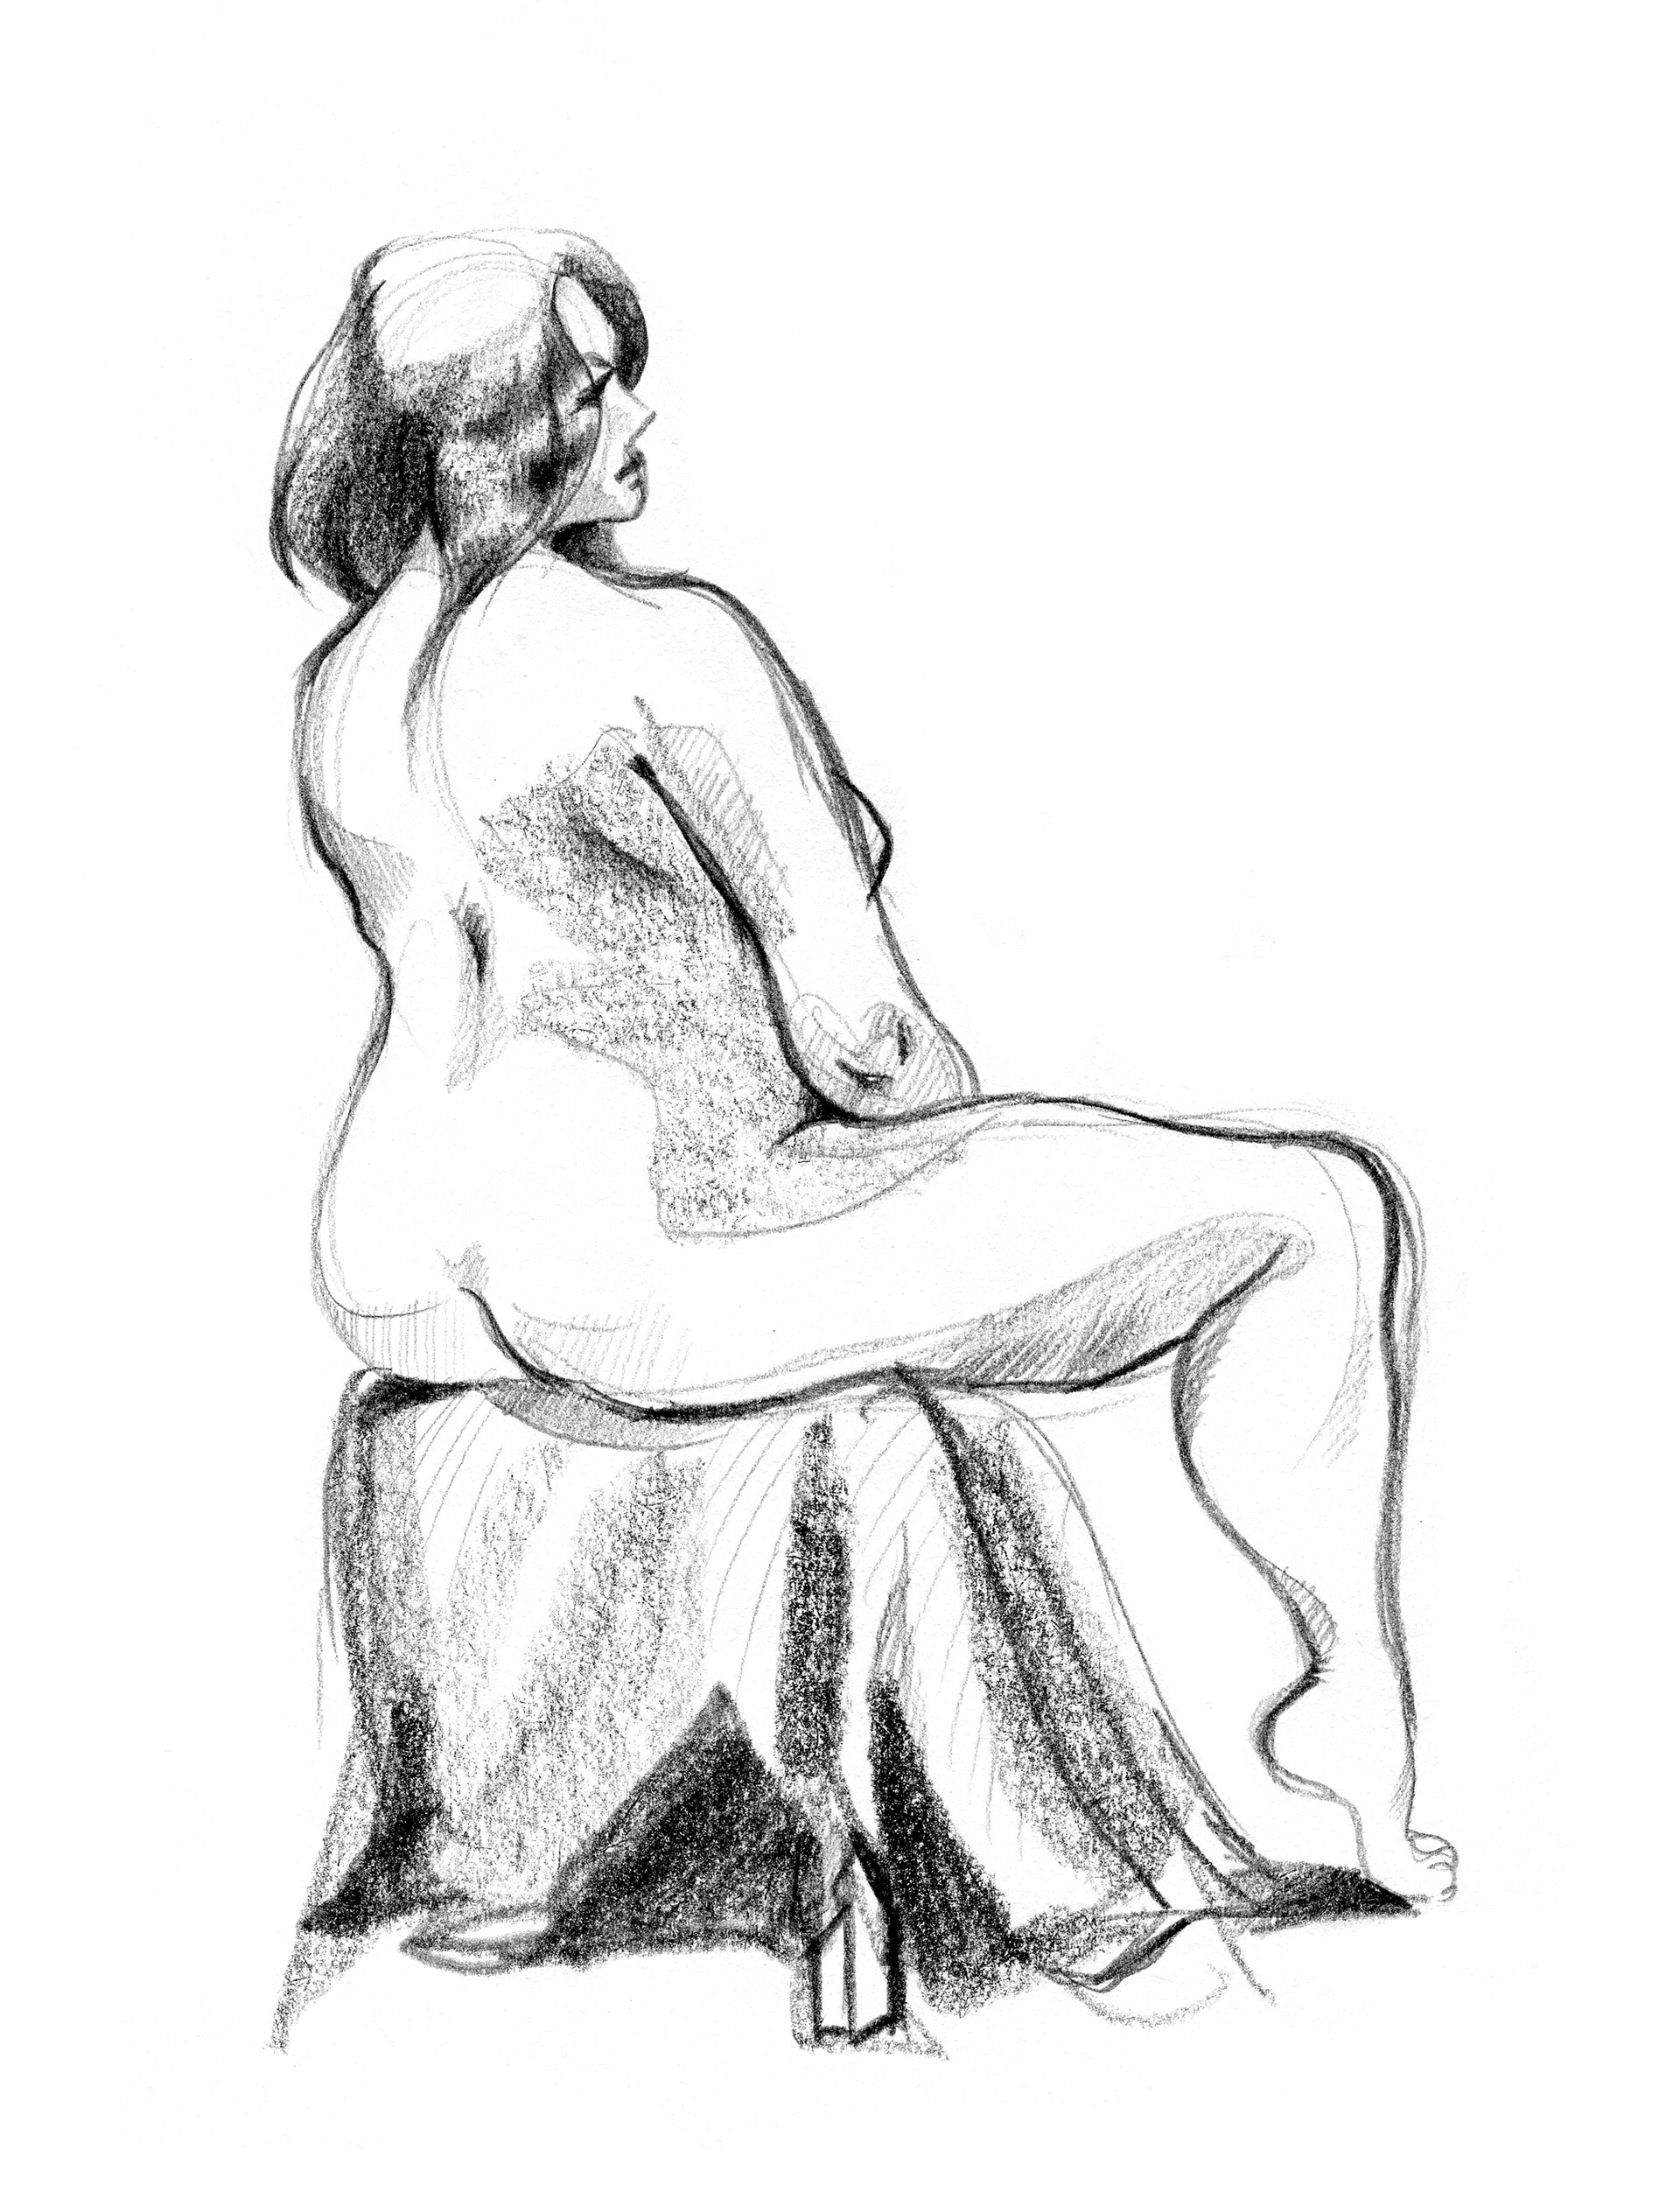 Elisa moriconi 4 10 ottobre sitting girl pencil 01